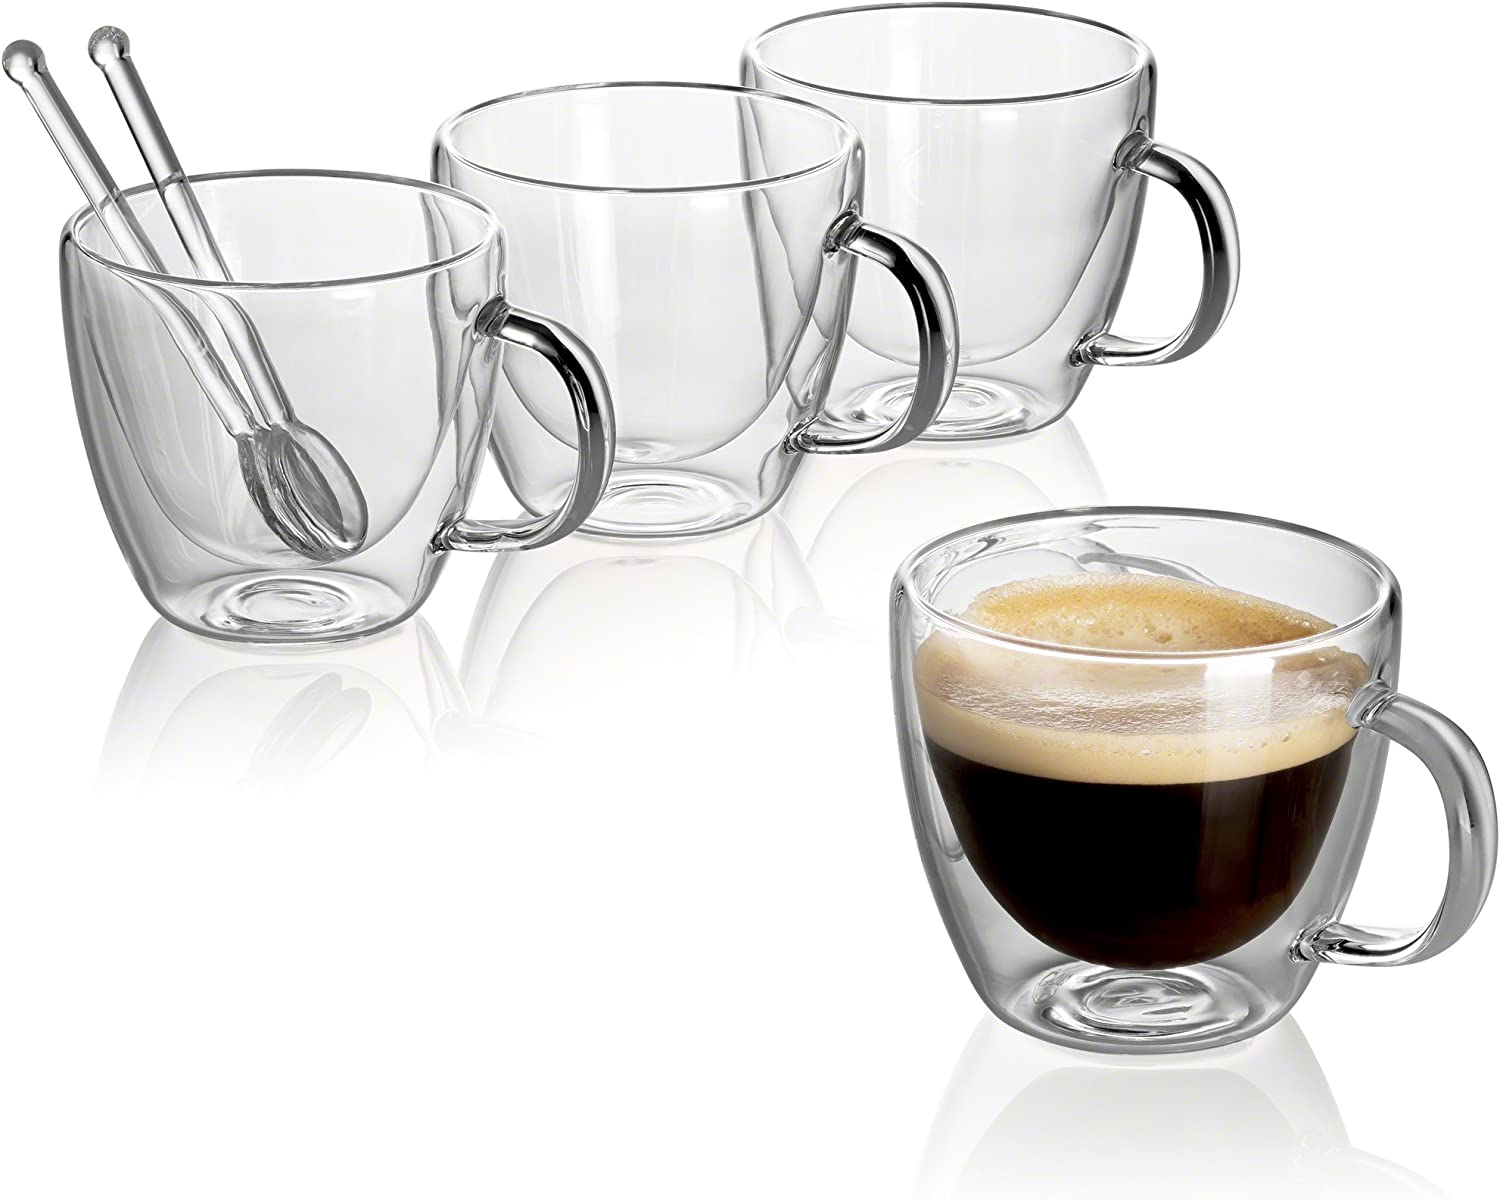 Jecobi R Cafecito Extra Strong Double Wall Insulated Glasses Espresso Mugs Set Of 4 5 2 Oz 150ml Plus 2 Mini Coffee Spoon Glass Amazon Co Uk Kitchen Home